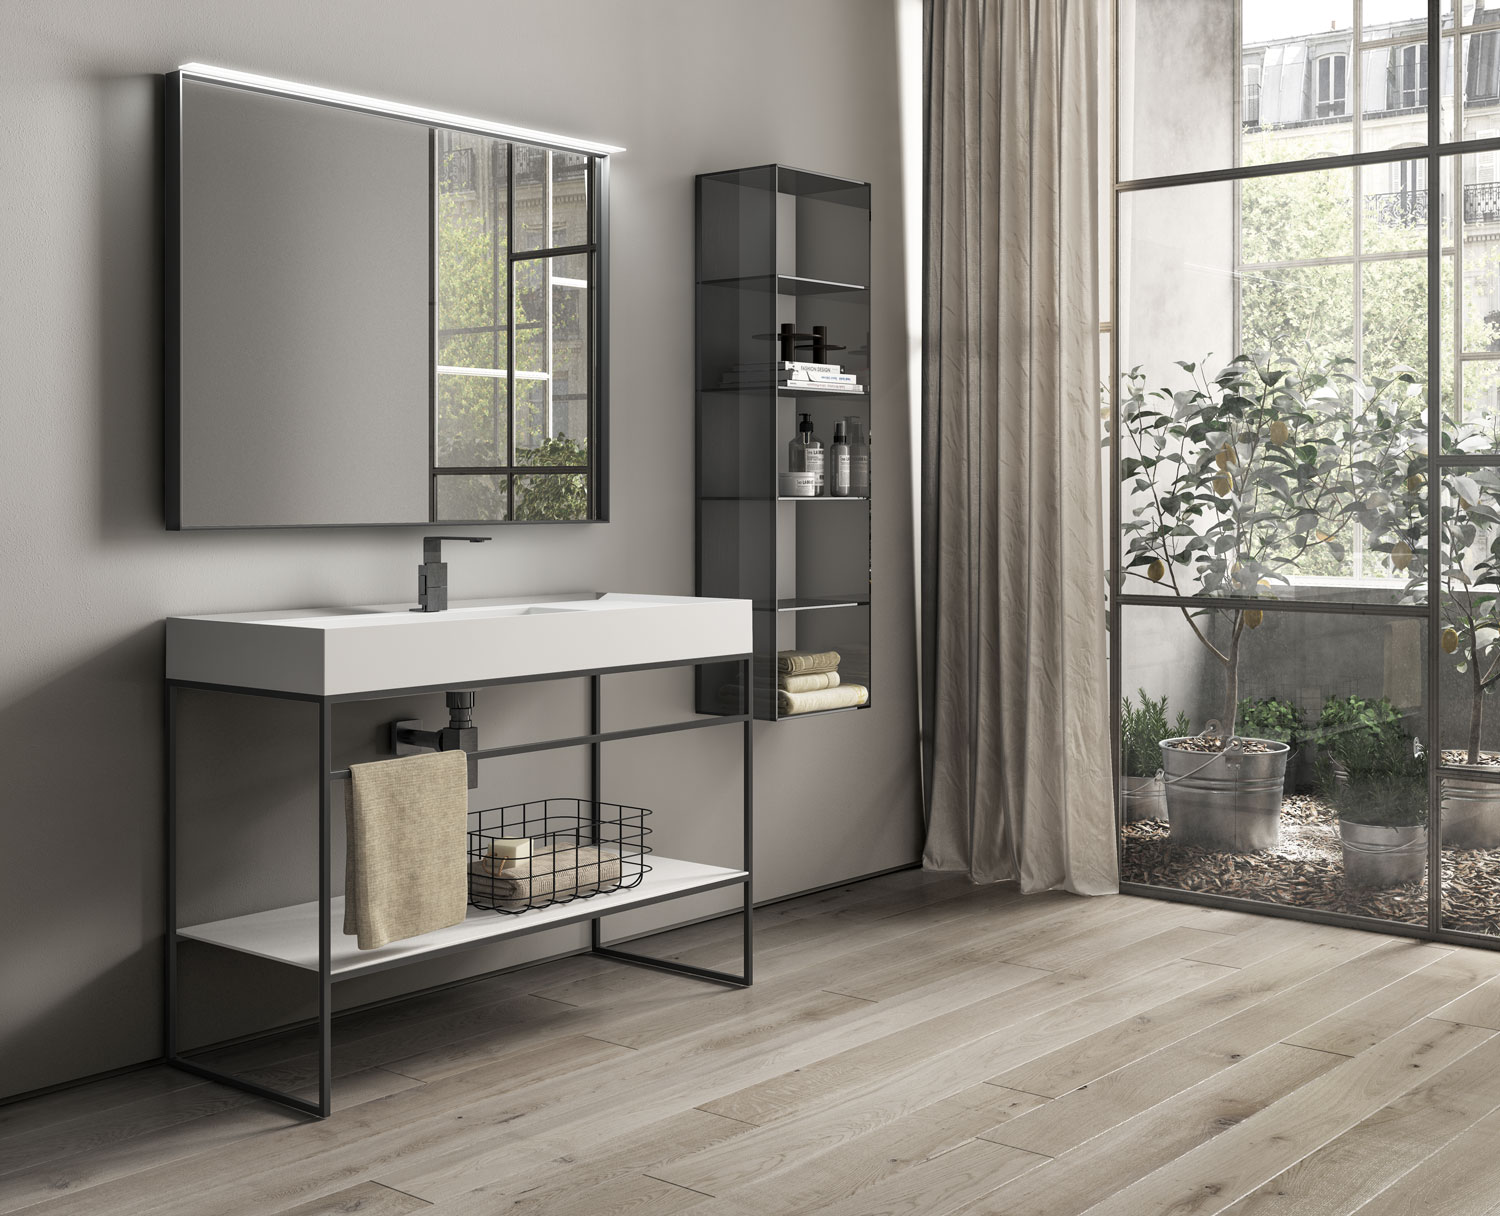 Accessori Da Bagno Design.Dogma By Aqua Ideagroup Arredo Bagno Design Ideagroup Blog